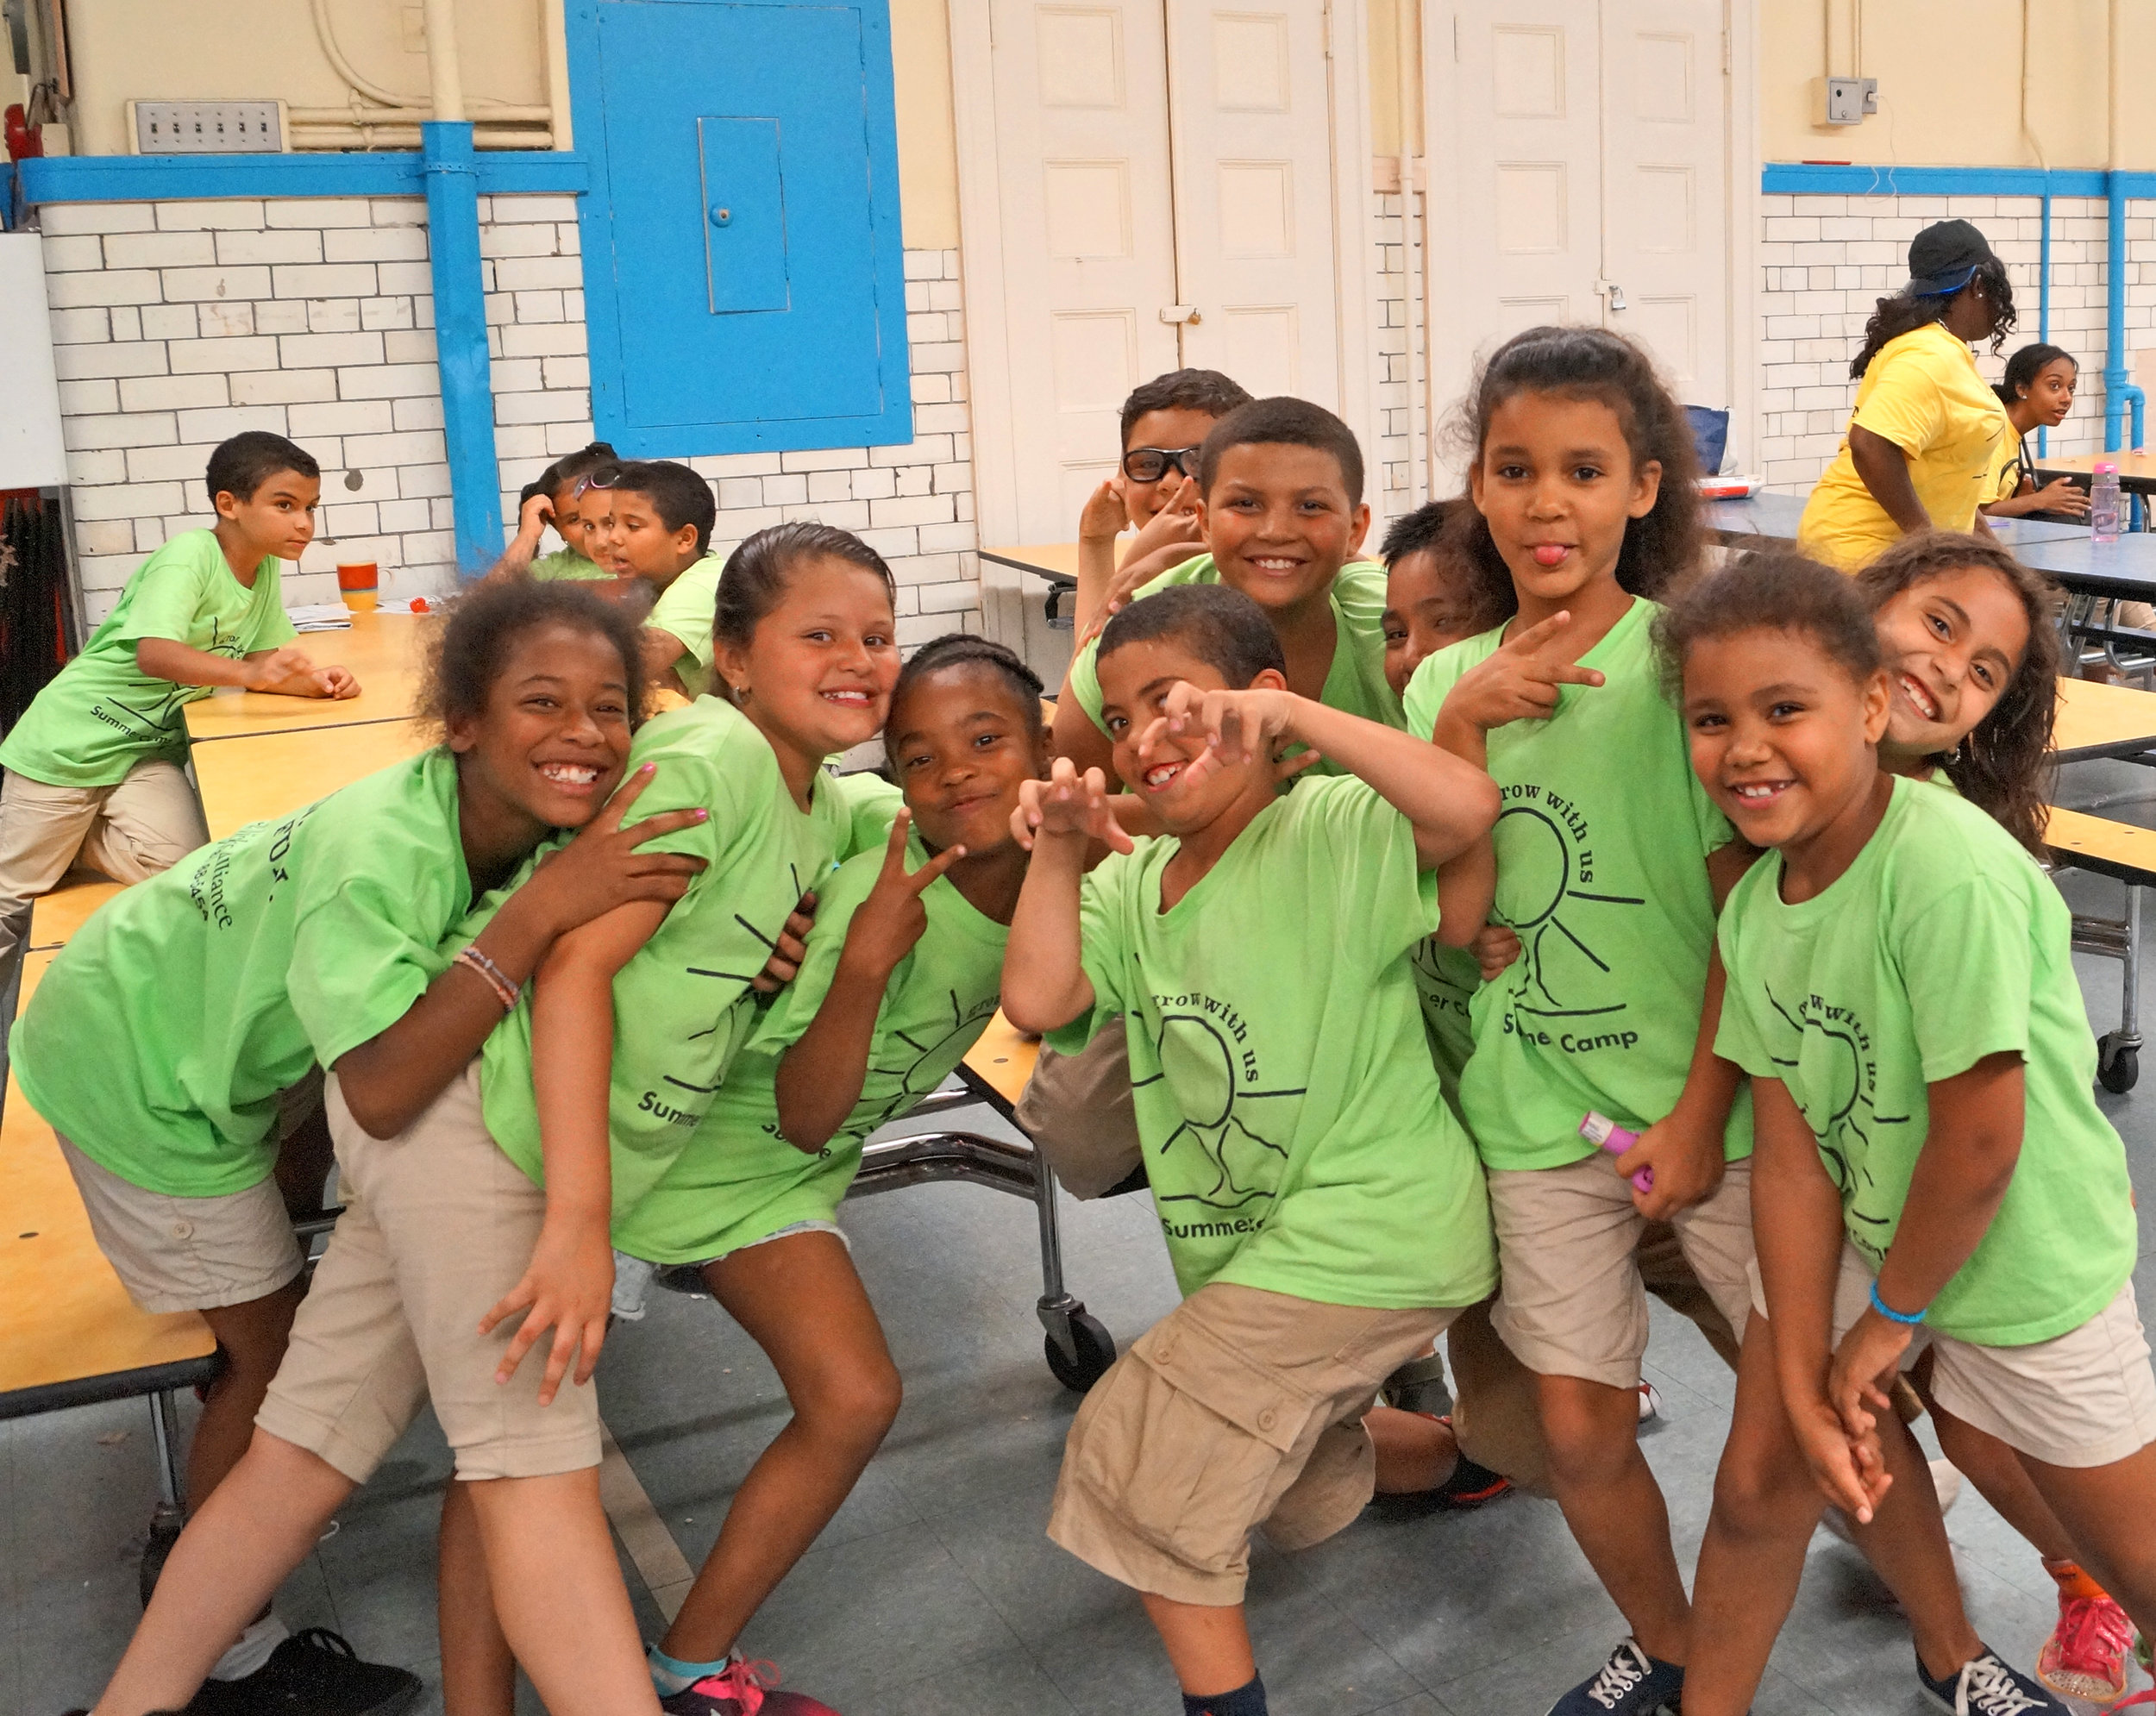 Our Summer Camp kids enjoy their break with fun activities and educational trips.